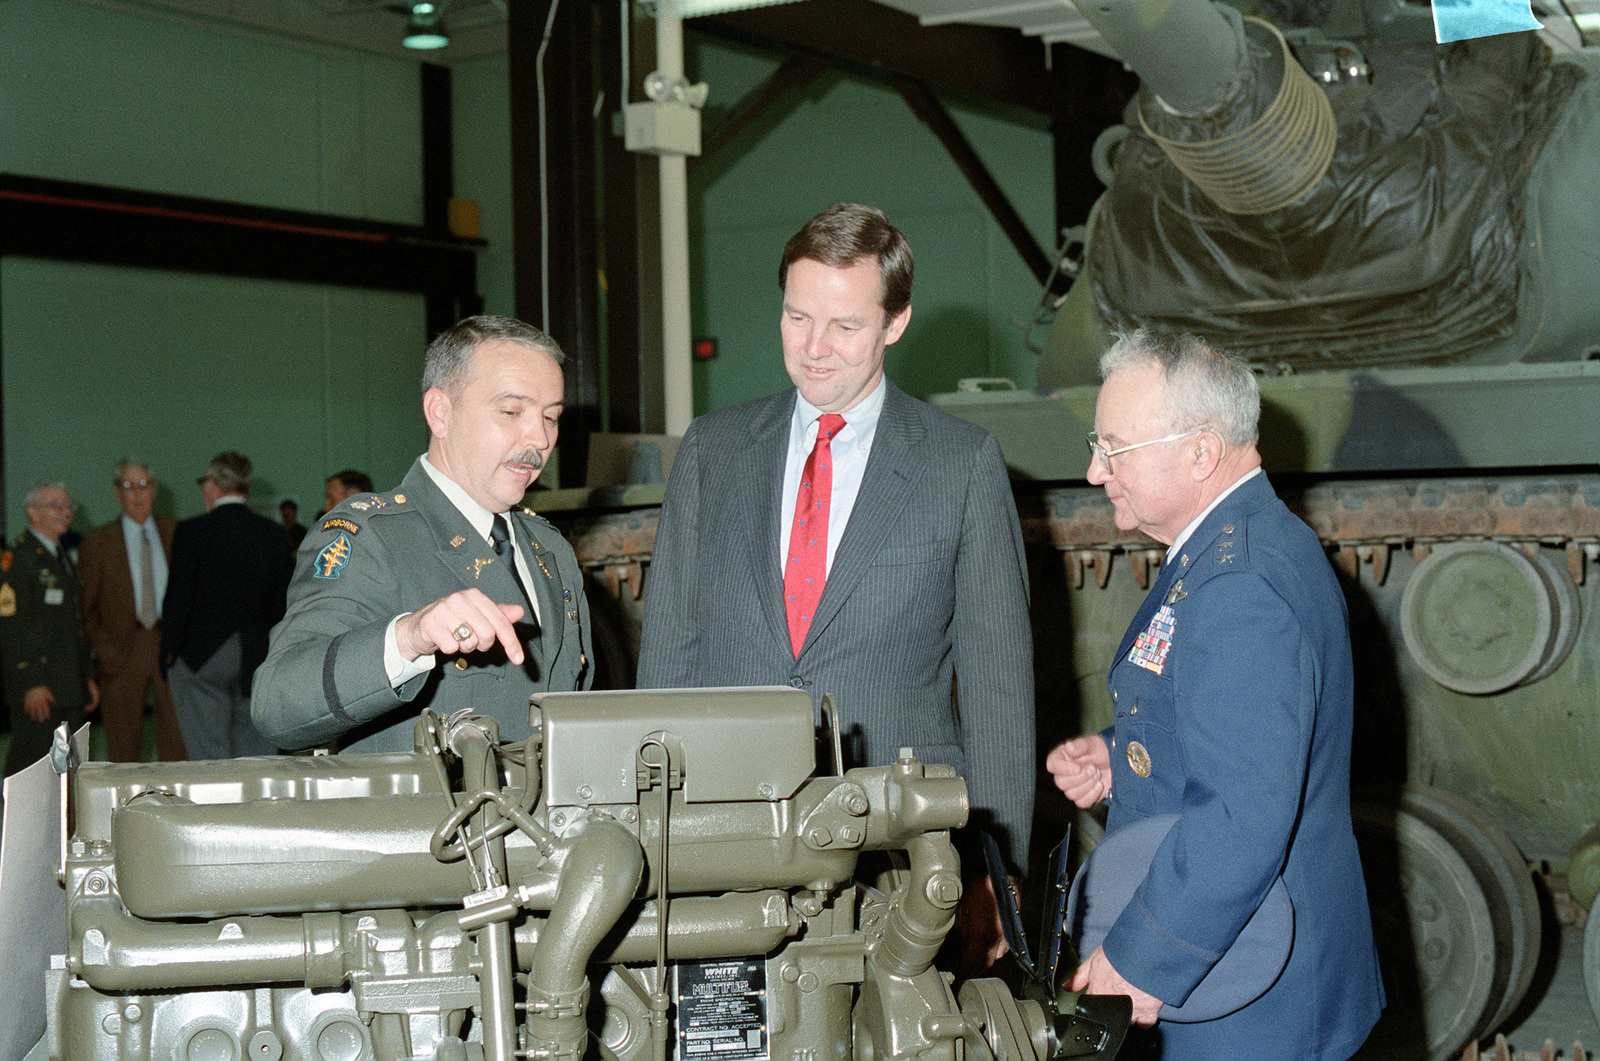 Lieutenant Colonel Harper, left, points out a feature of a multifuel truck engine while talking to New Jersey Governor Thomas H. Kean, center, and Major General Francis R. Gerard, State Adjutant General, New Jersey National Guard, during the opening of the New Jersey National Guard High Technology Training Center